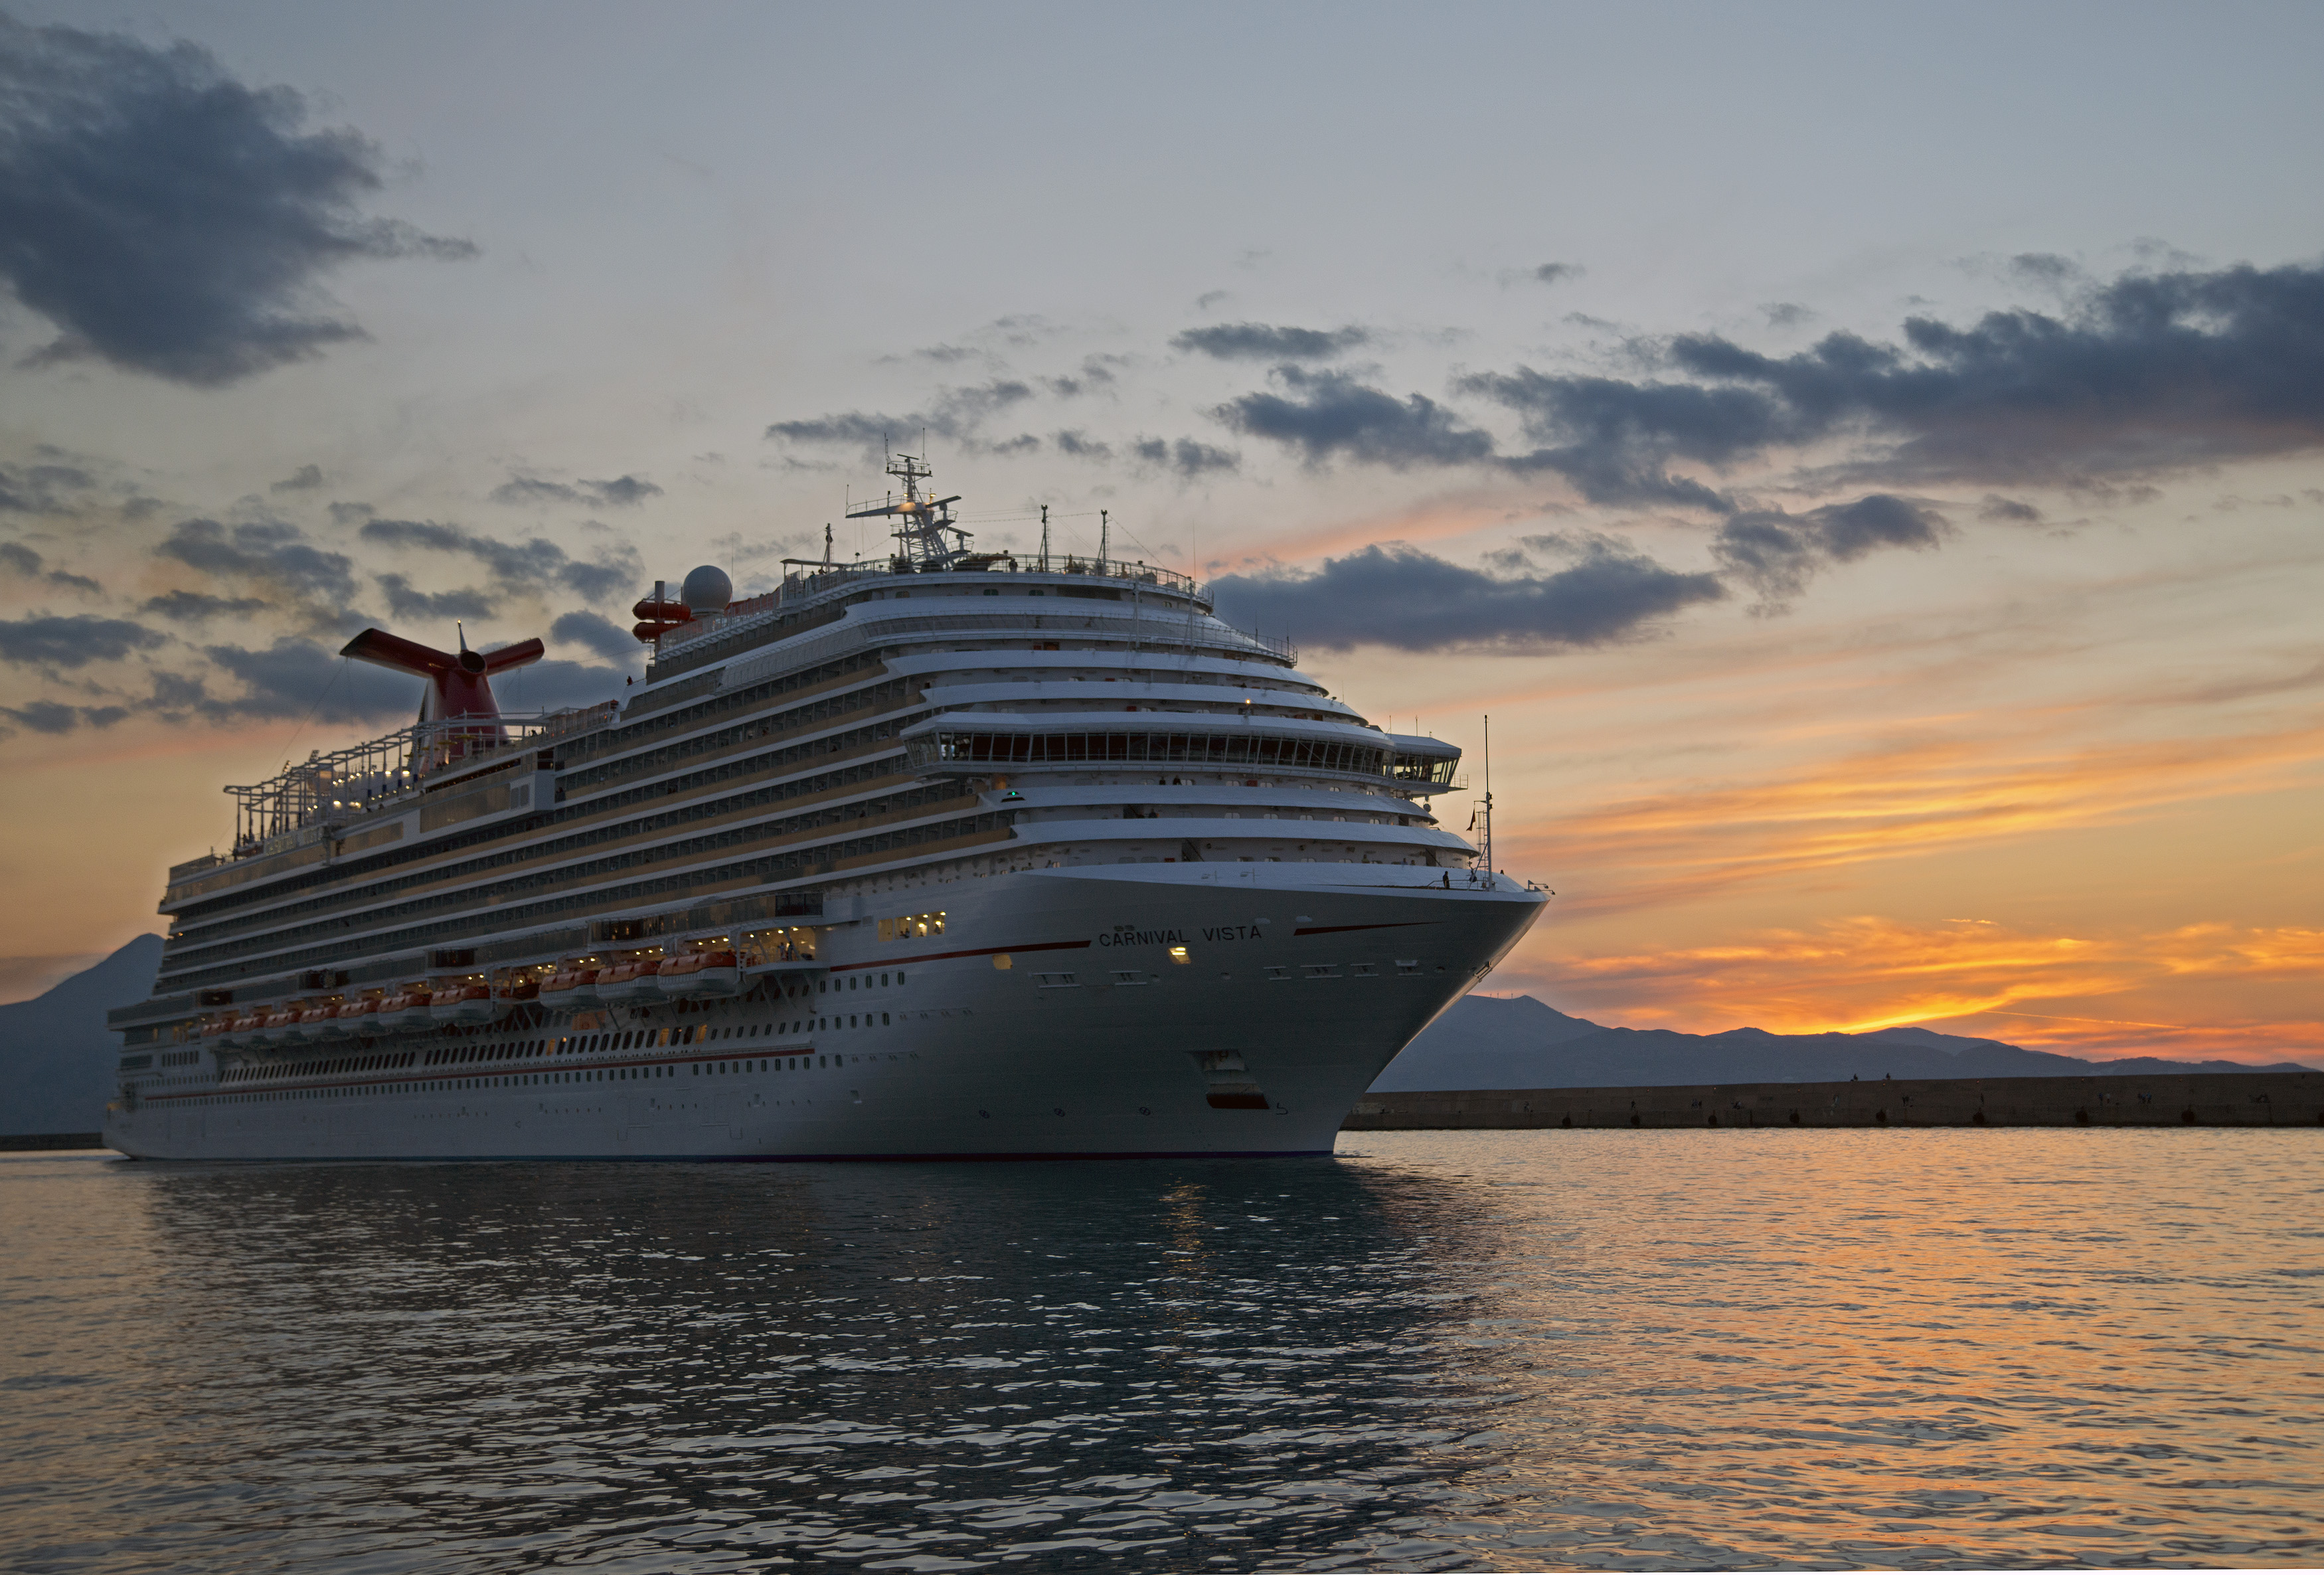 The Carnival Vista. The largest and most innovative cruise vessel in Carnival Cruise Line's fleet.